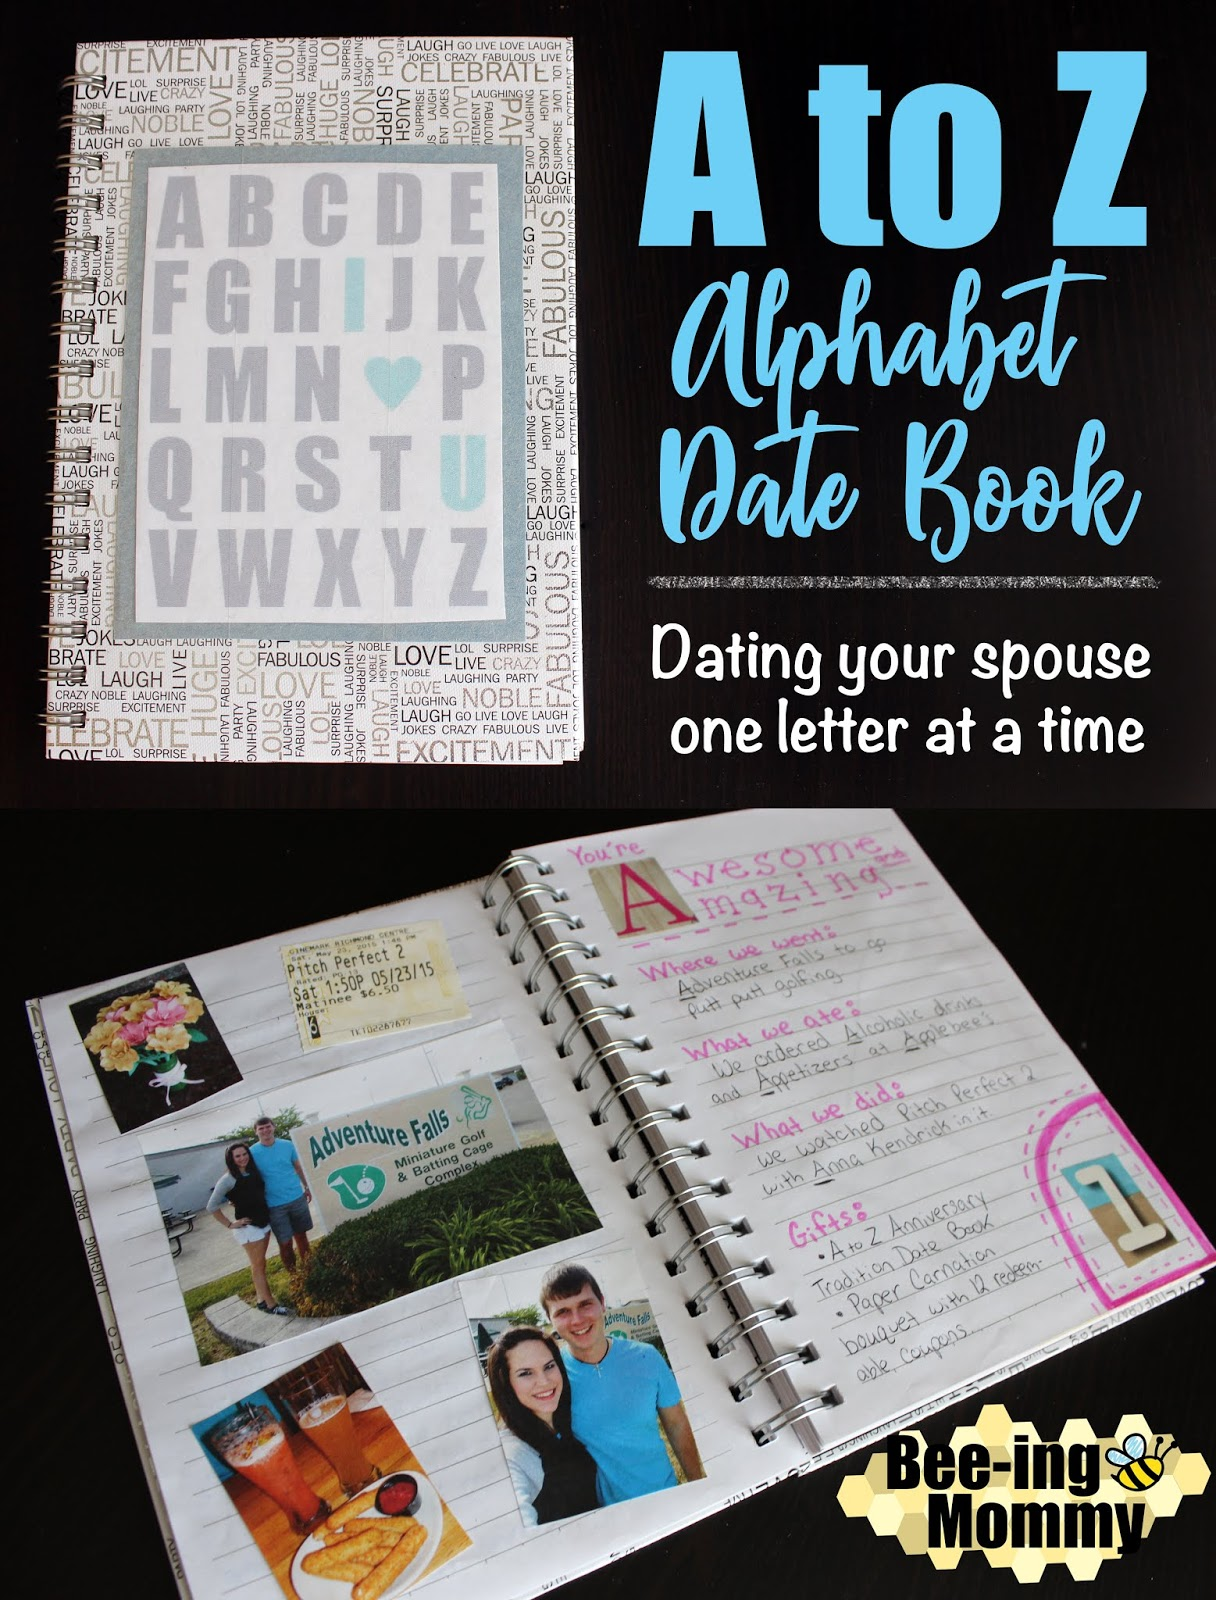 A to z dating time